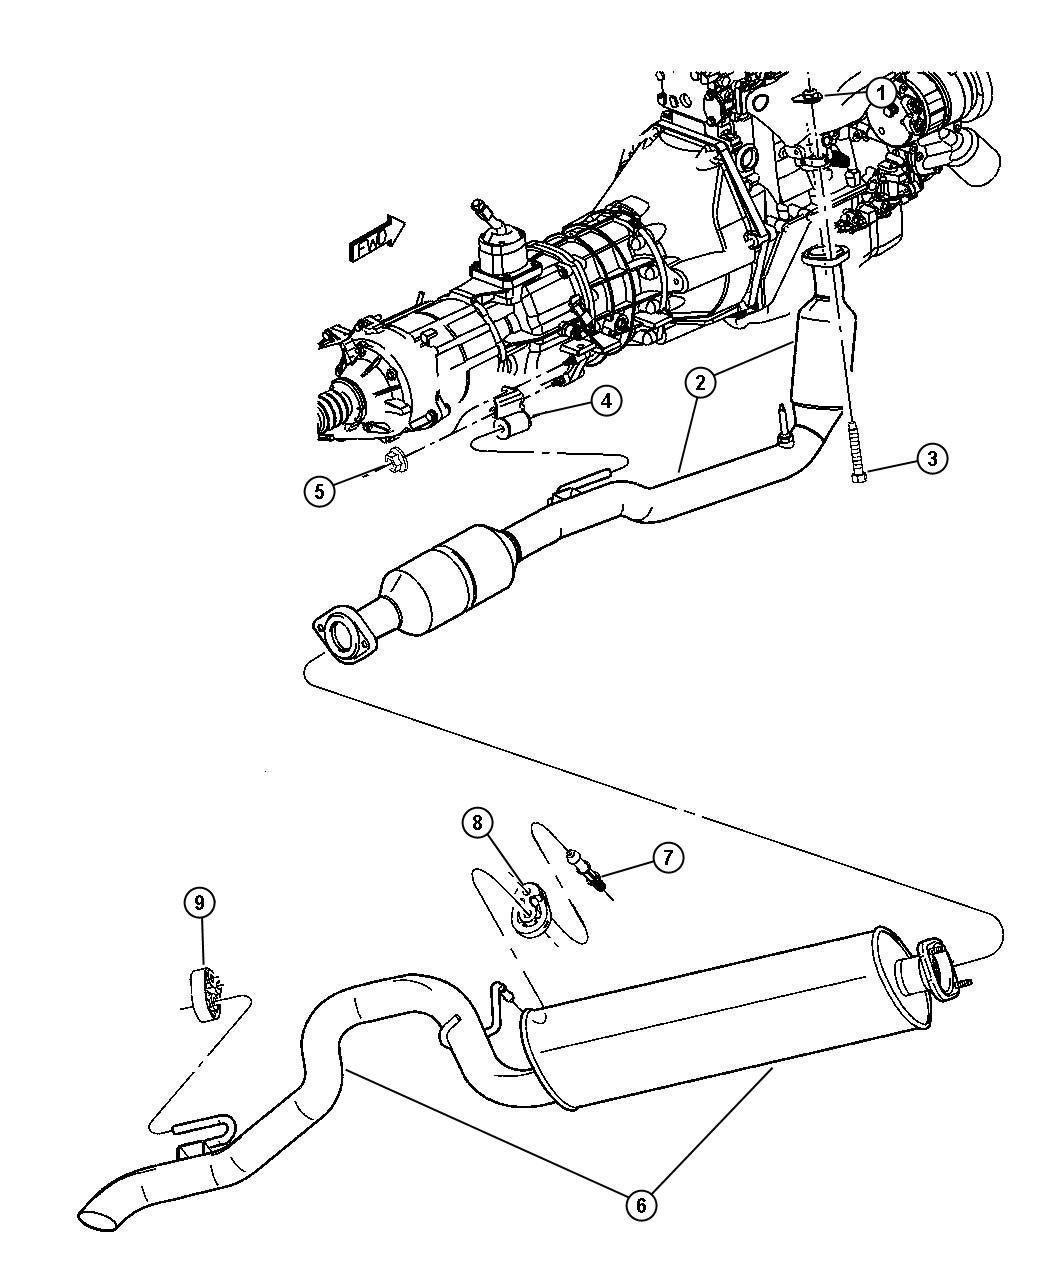 jeep grand cherokee engine parts diagram jeep auto wiring diagram